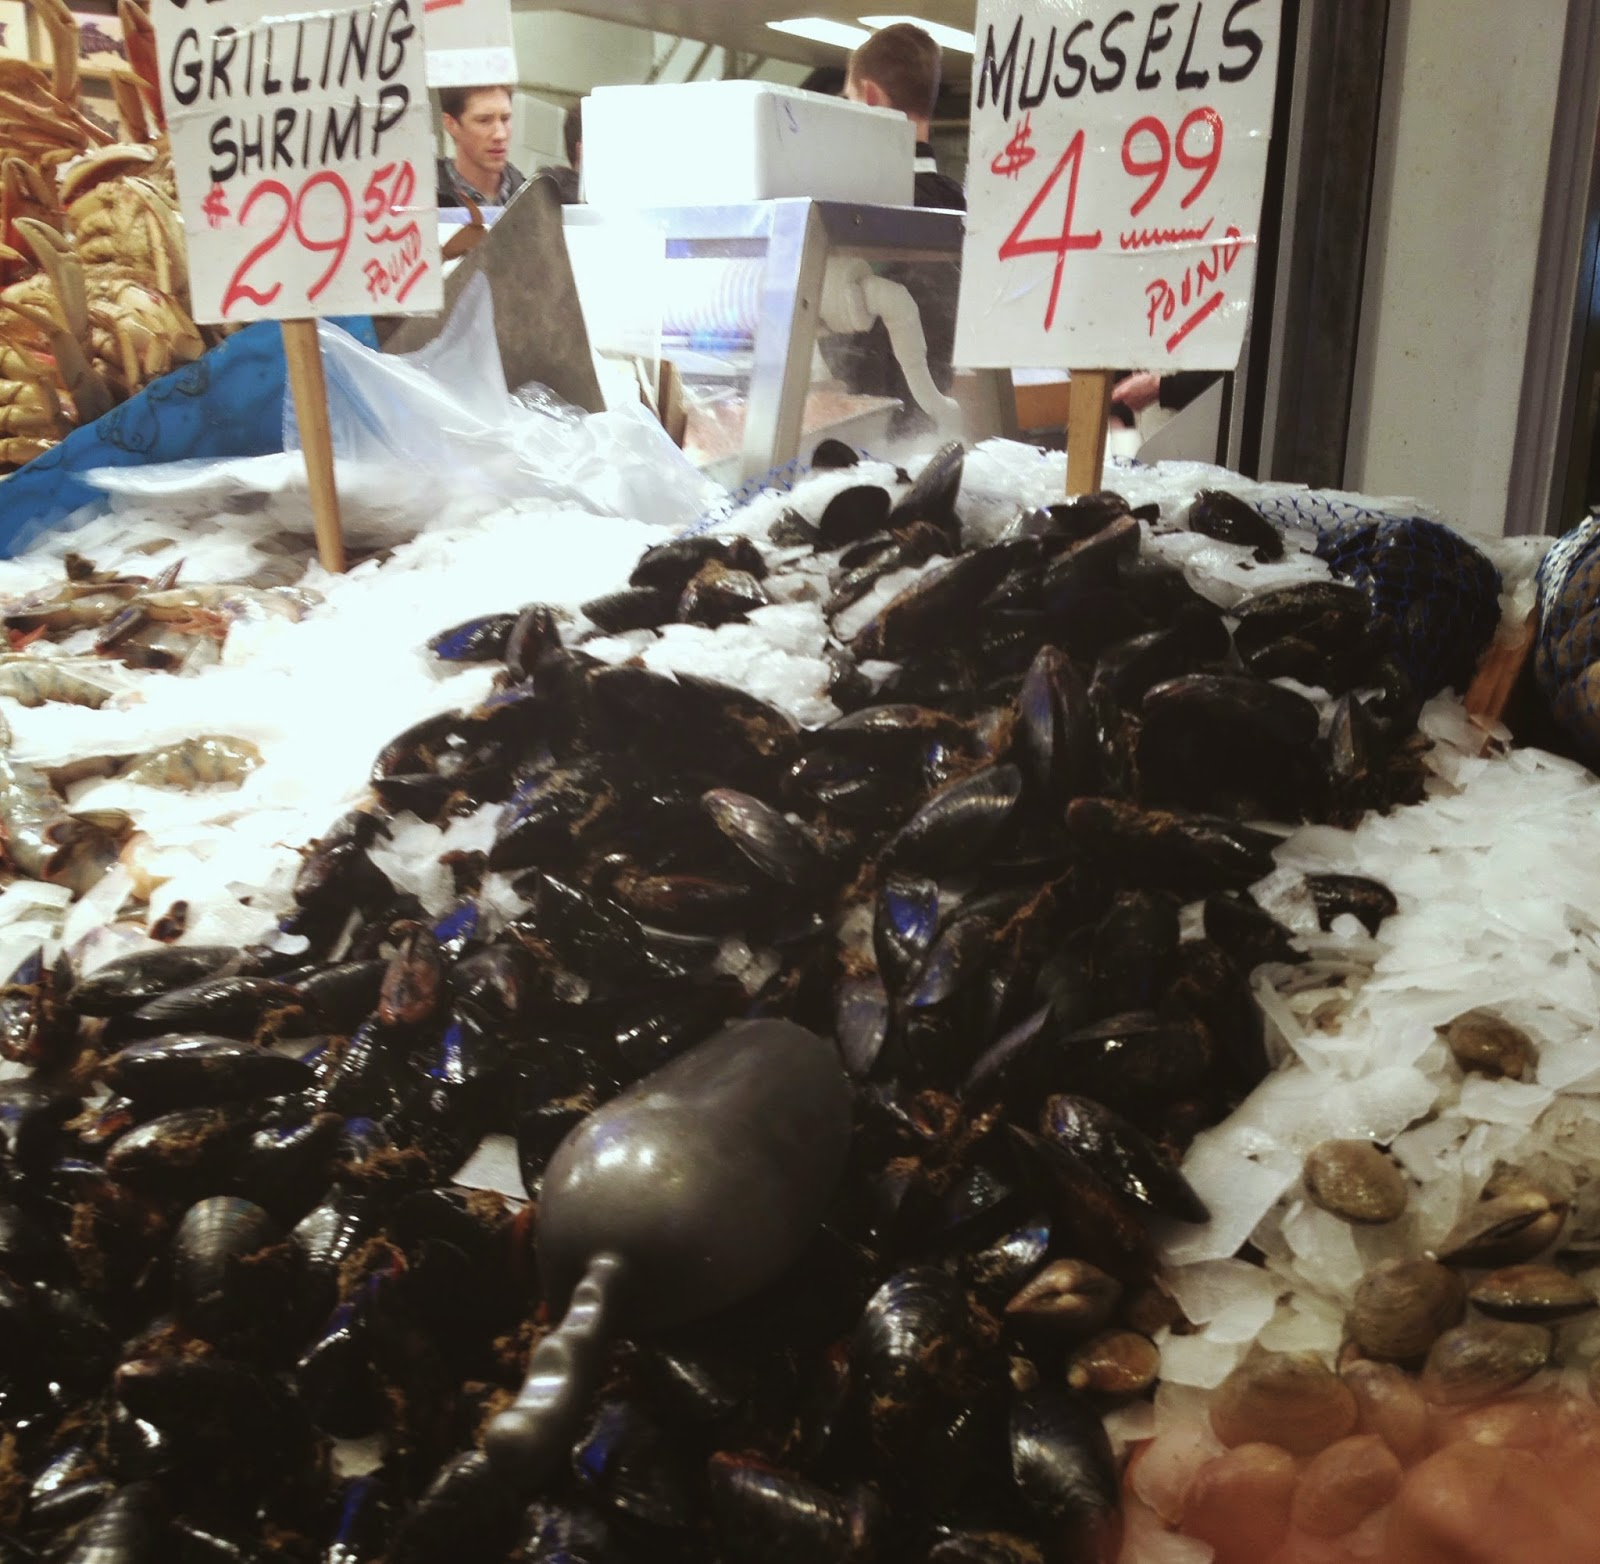 Mussels and shrimp at fish market